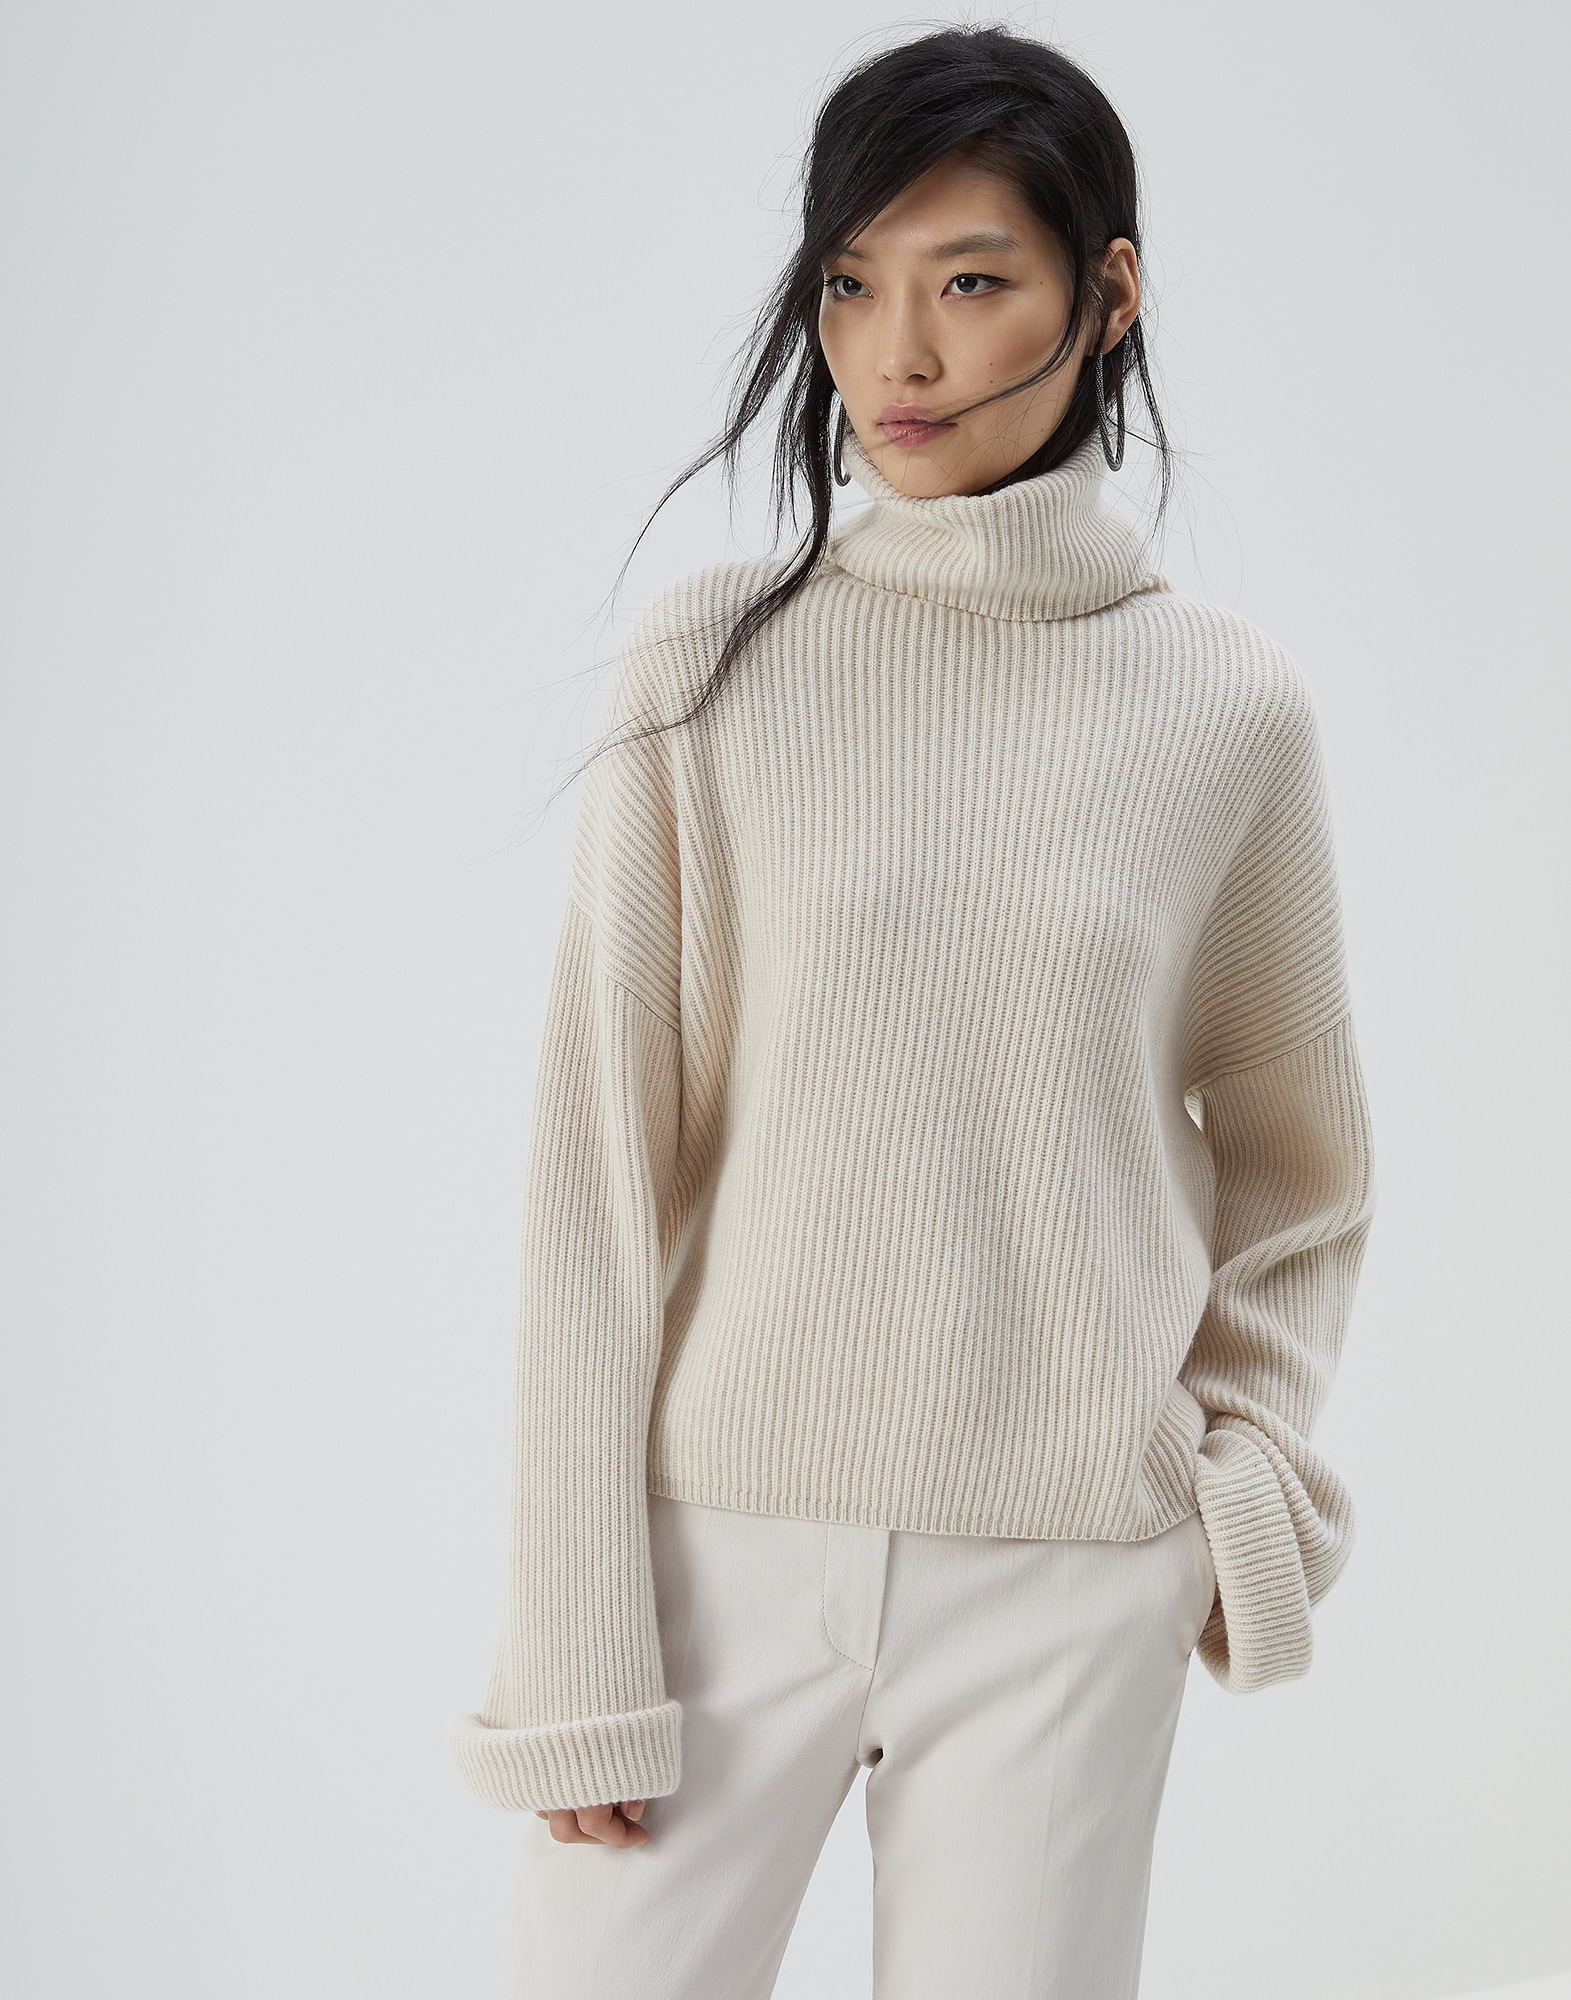 High Neck Sweater - Front view